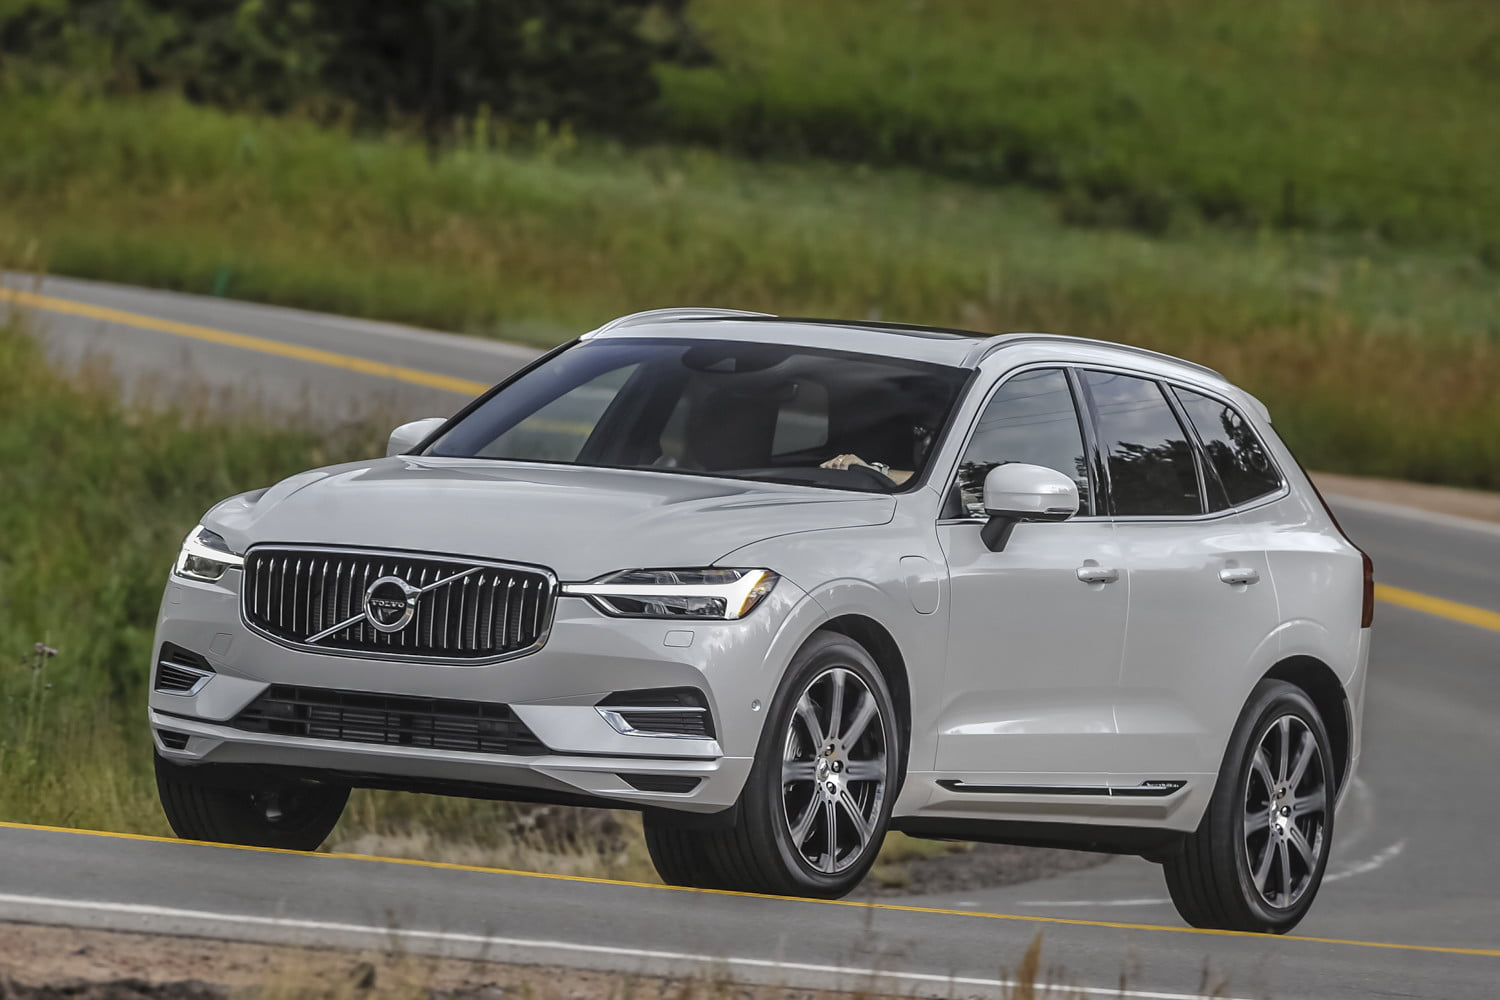 2018 Volvo Xc60 T8 First Drive Review  Digital Trends